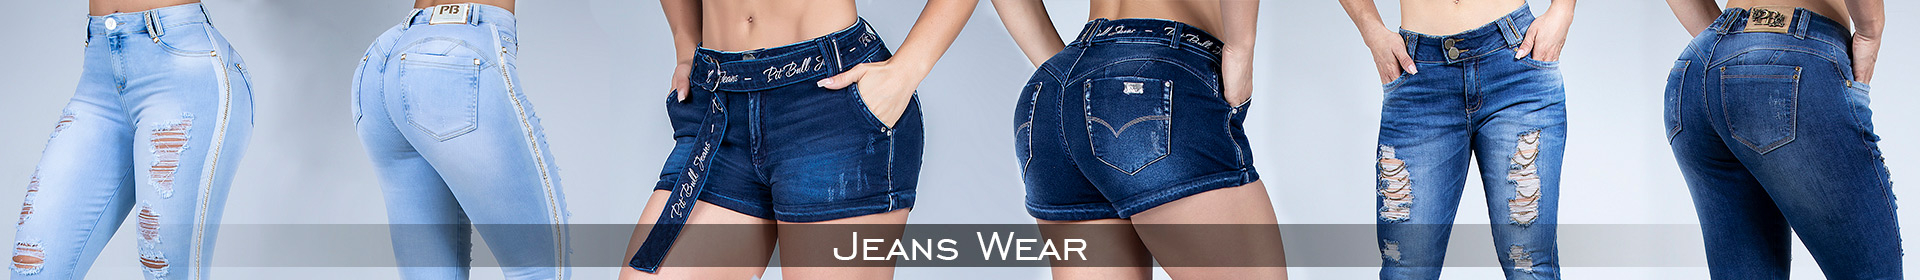 1450060aaa Pit Bull Jeans - Loja Oficial do Brasil - Jeans